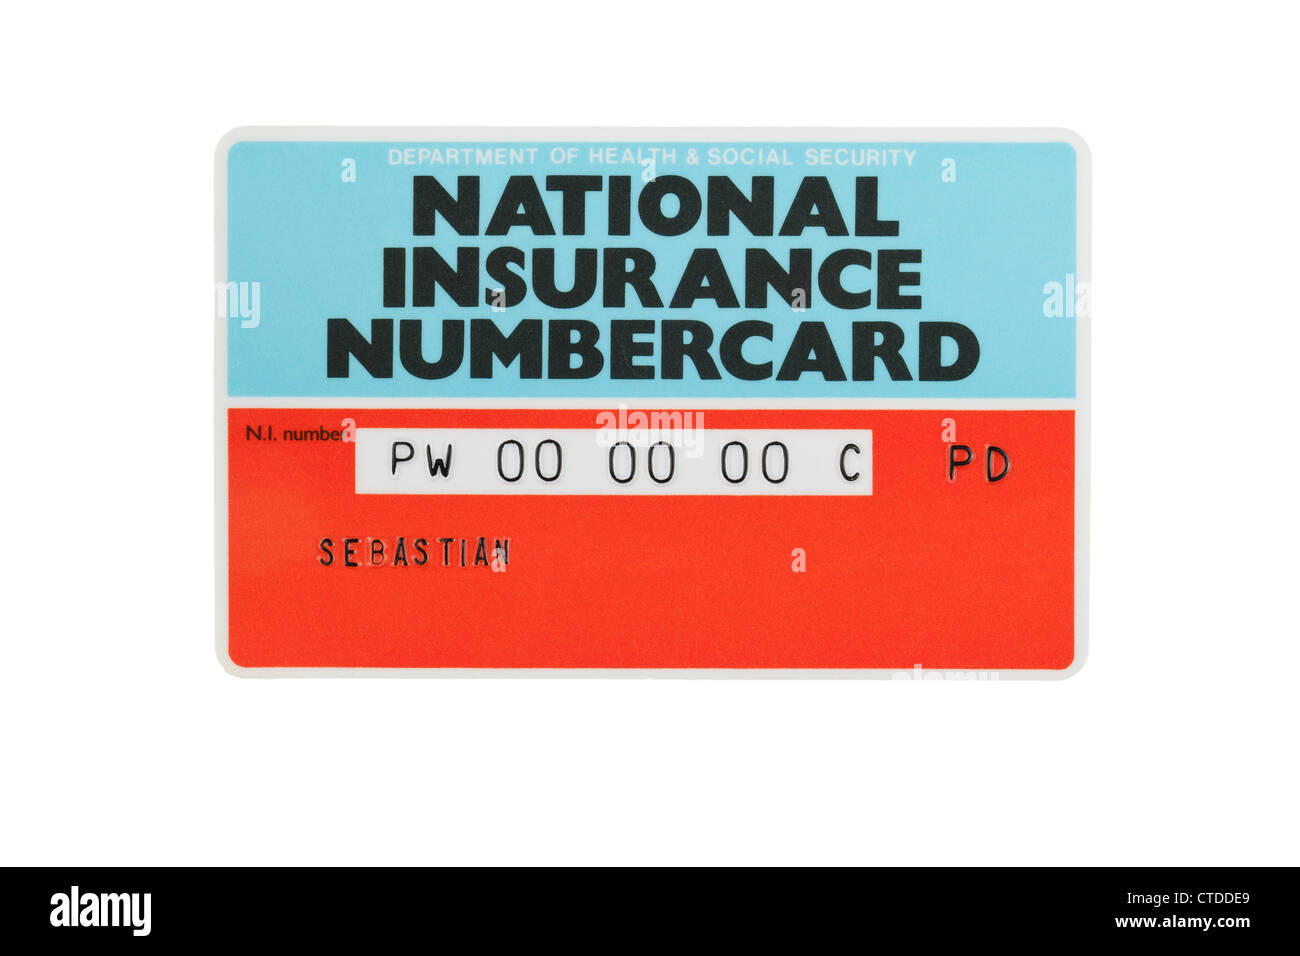 National Insurance Number card - Stock Image